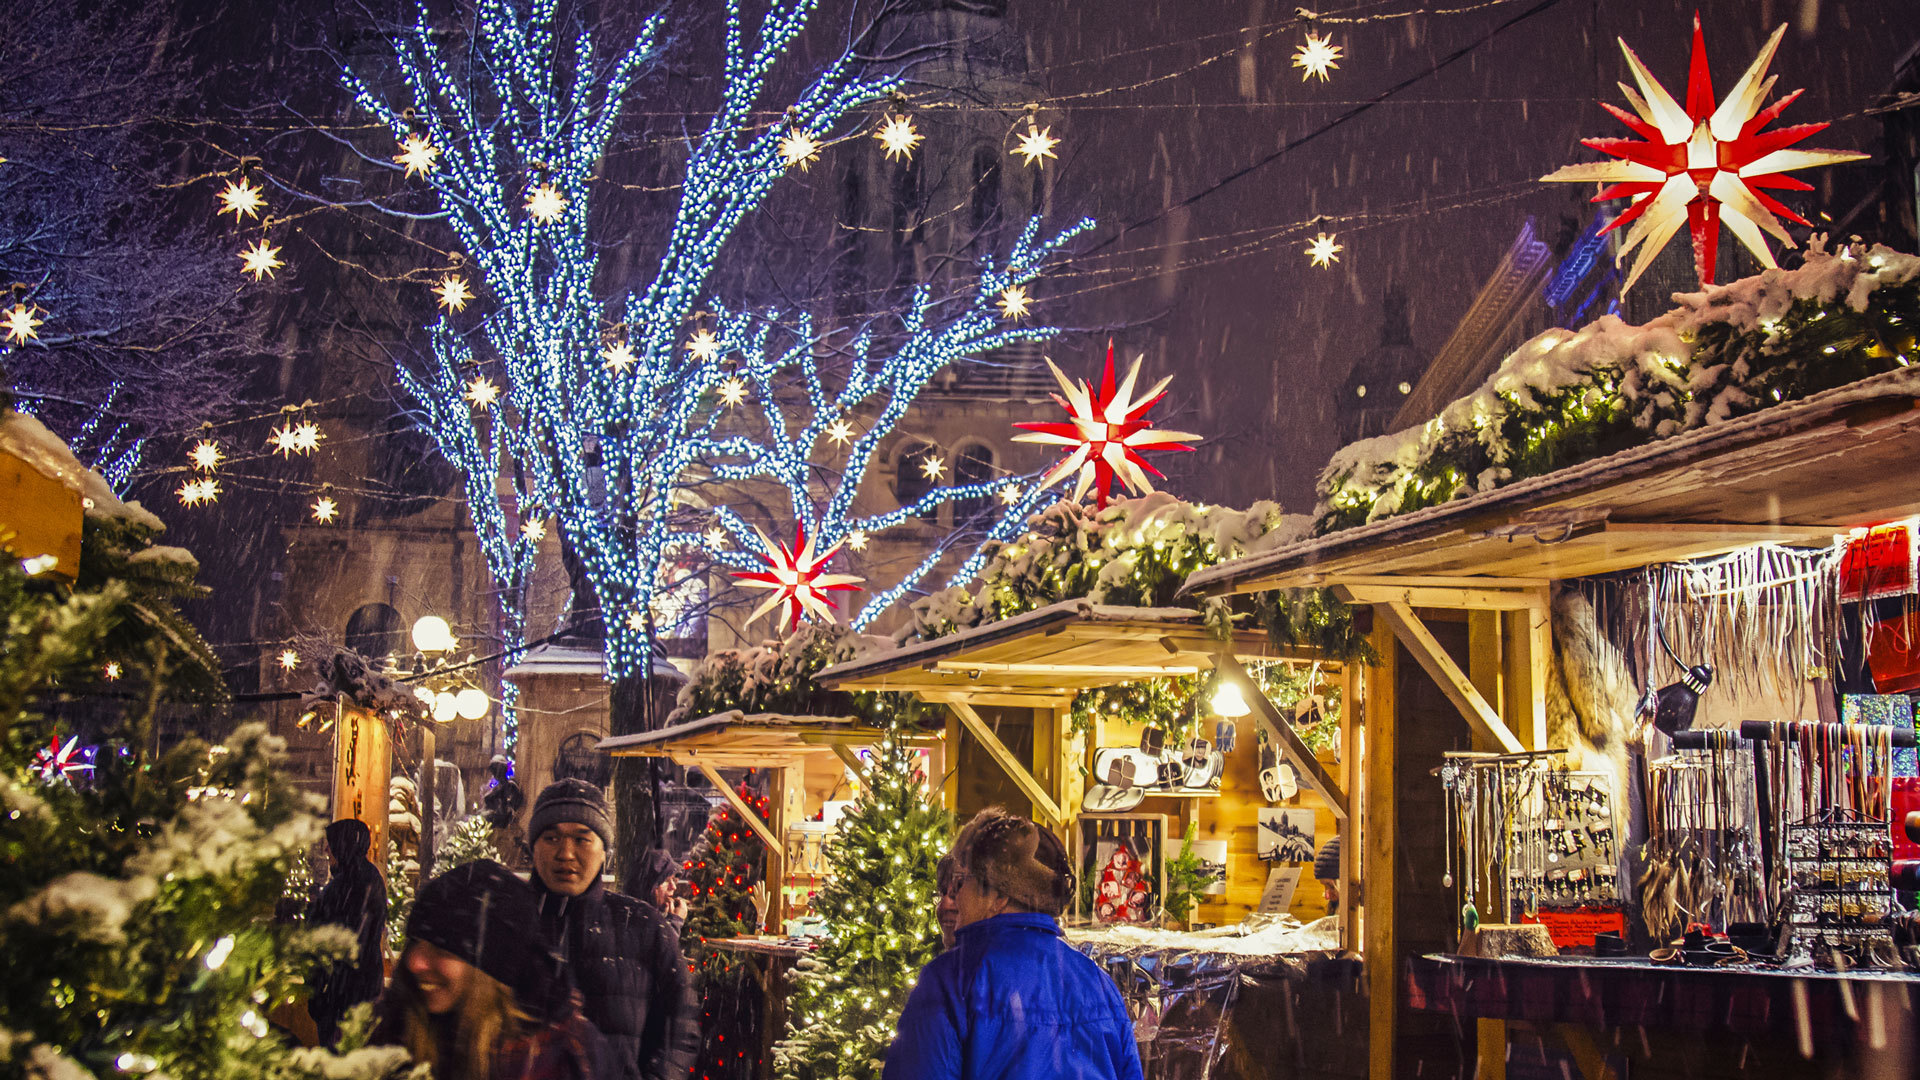 Montreal Christmas Market 2020 Christmas in Montreal 2020 Guide to Events, Markets and More